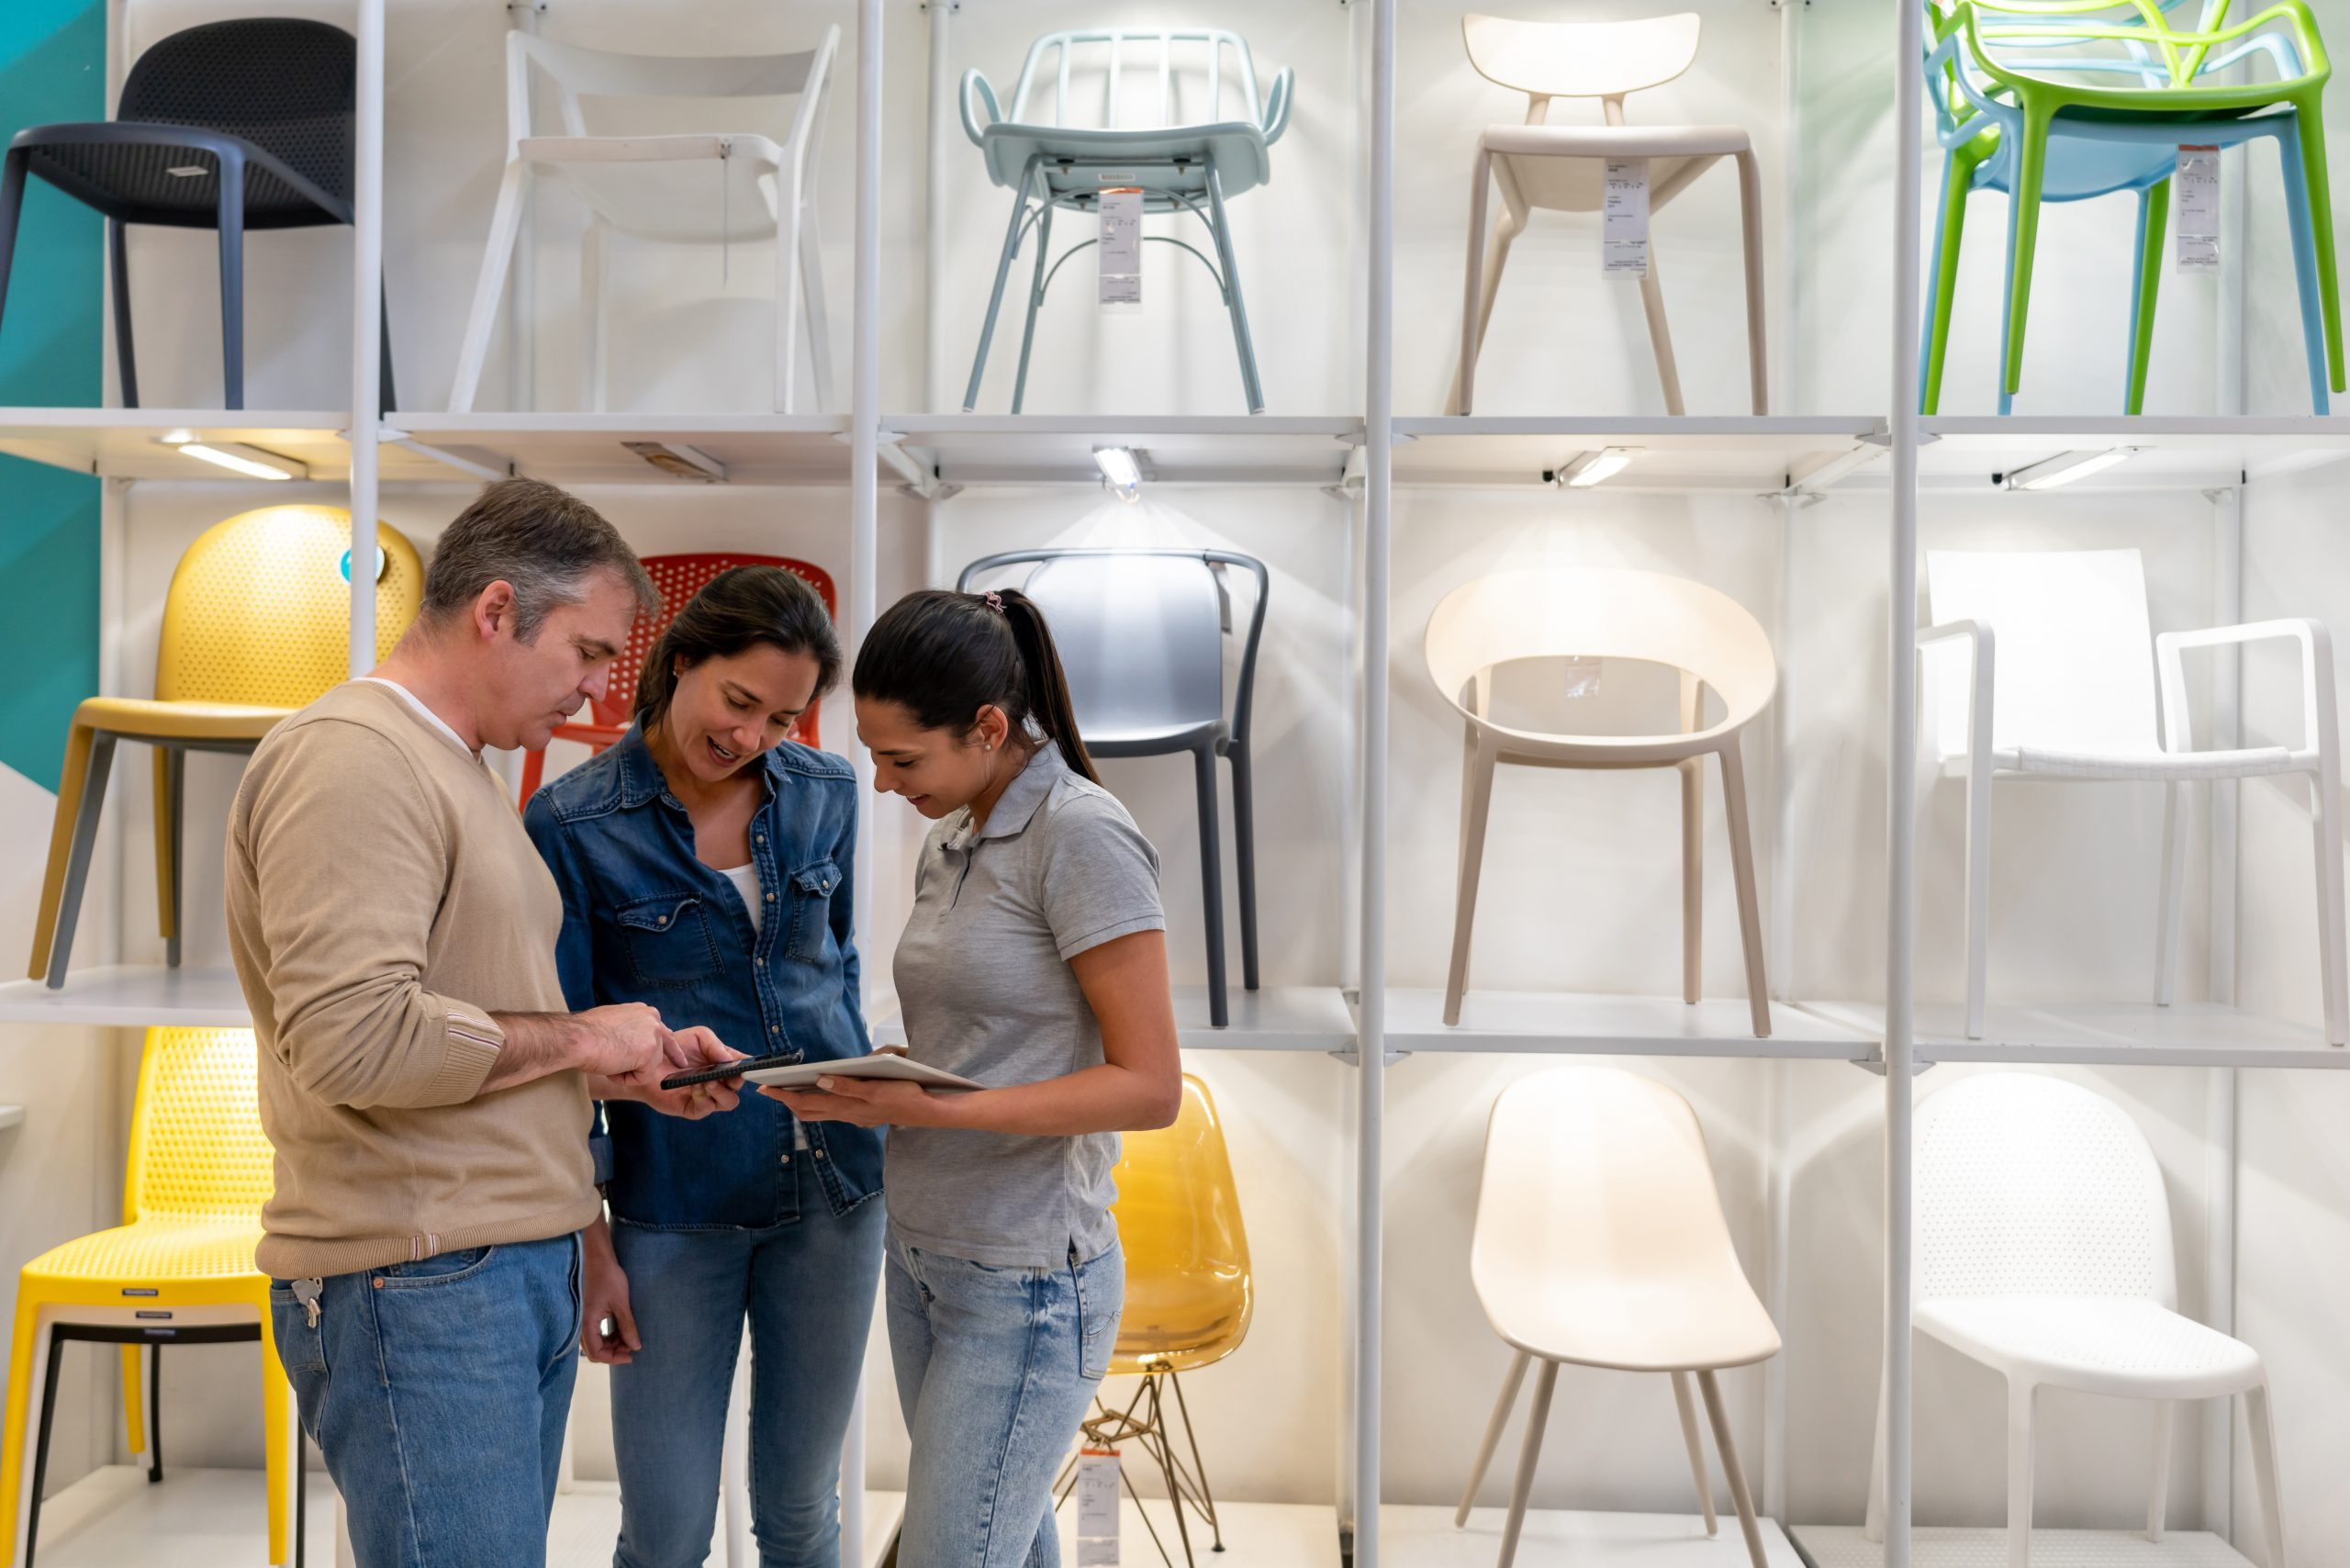 Friendly sales clerk helping adult couple look for furniture looking at a design on man's smartphone